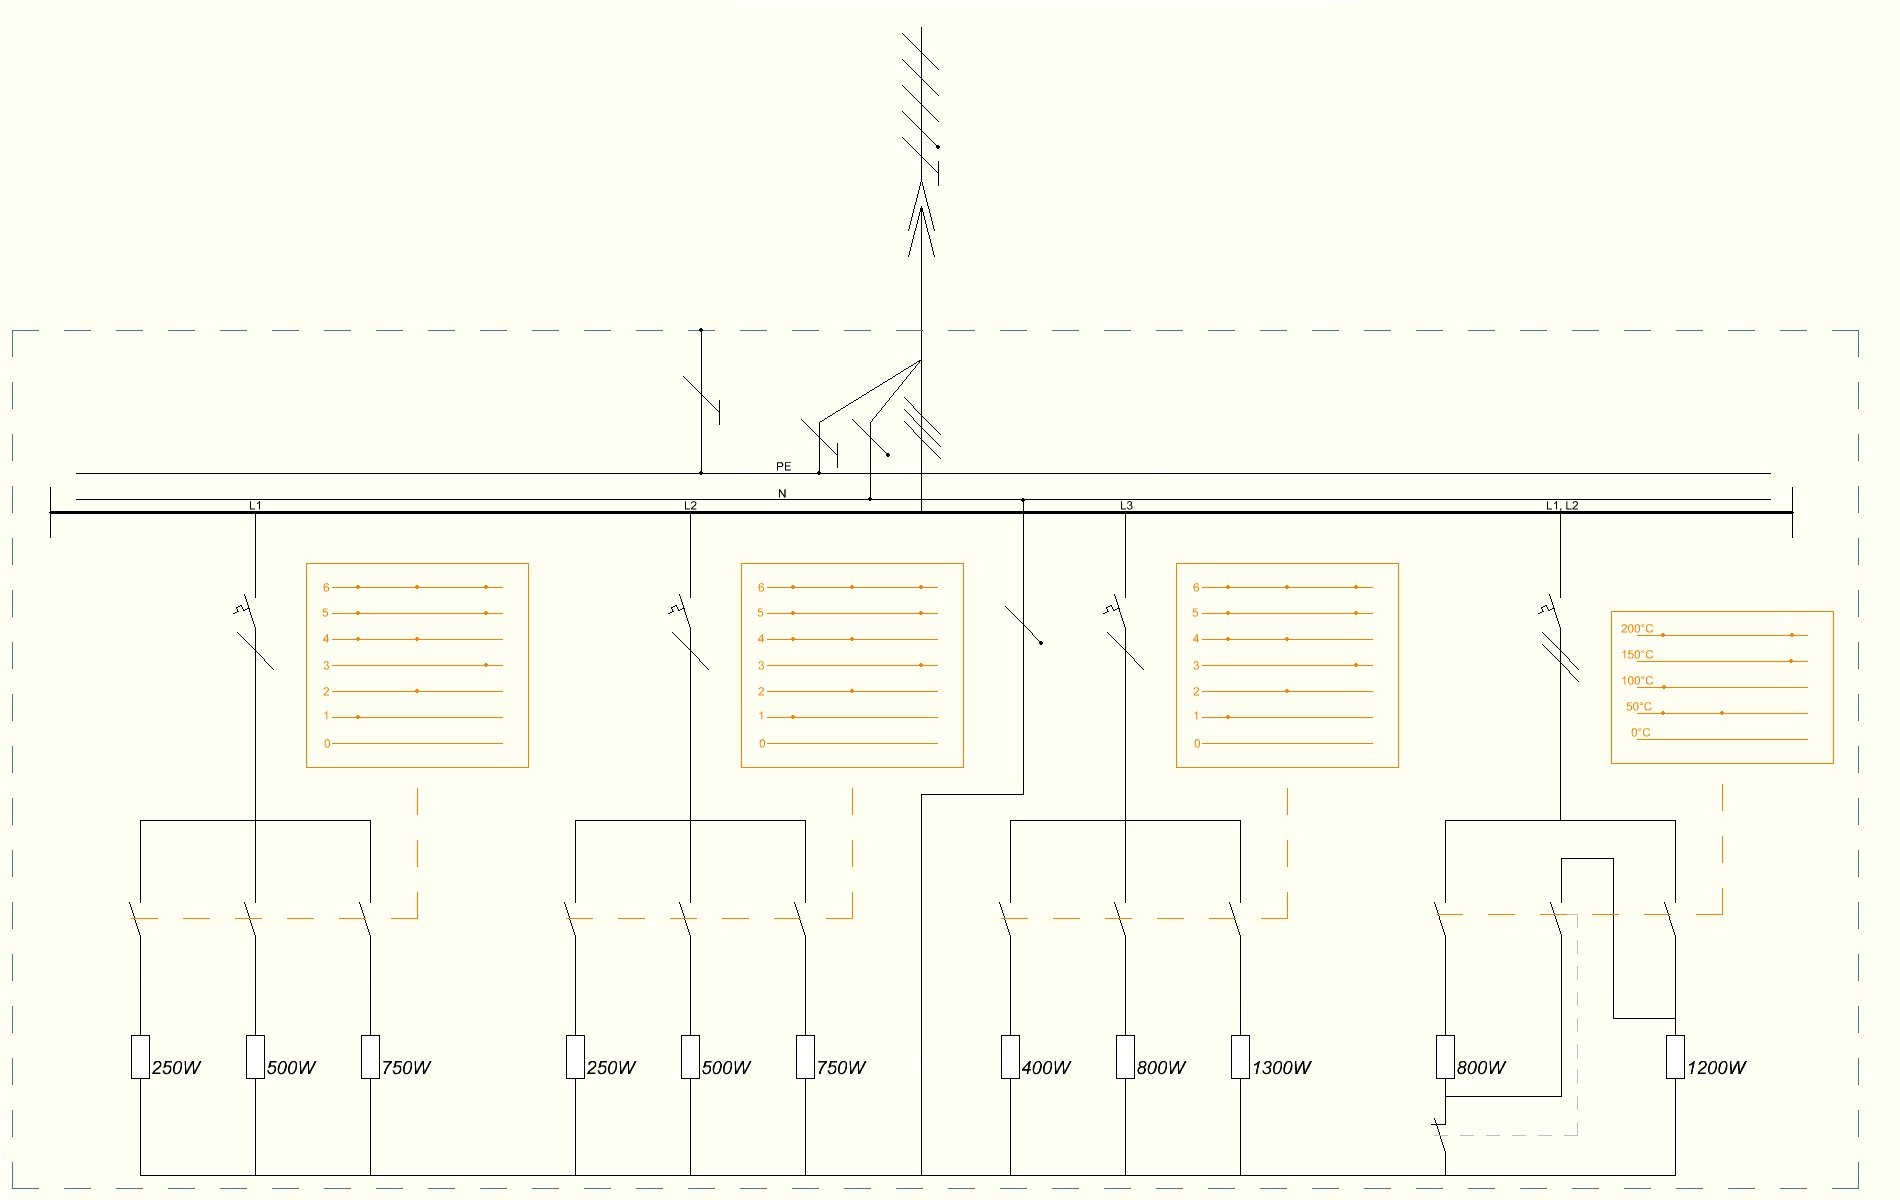 file schematic wiring diagram of electrical stove jpg wikimedia rh commons wikimedia org electric stove burner wiring diagram electric stove wiring diagram pdf